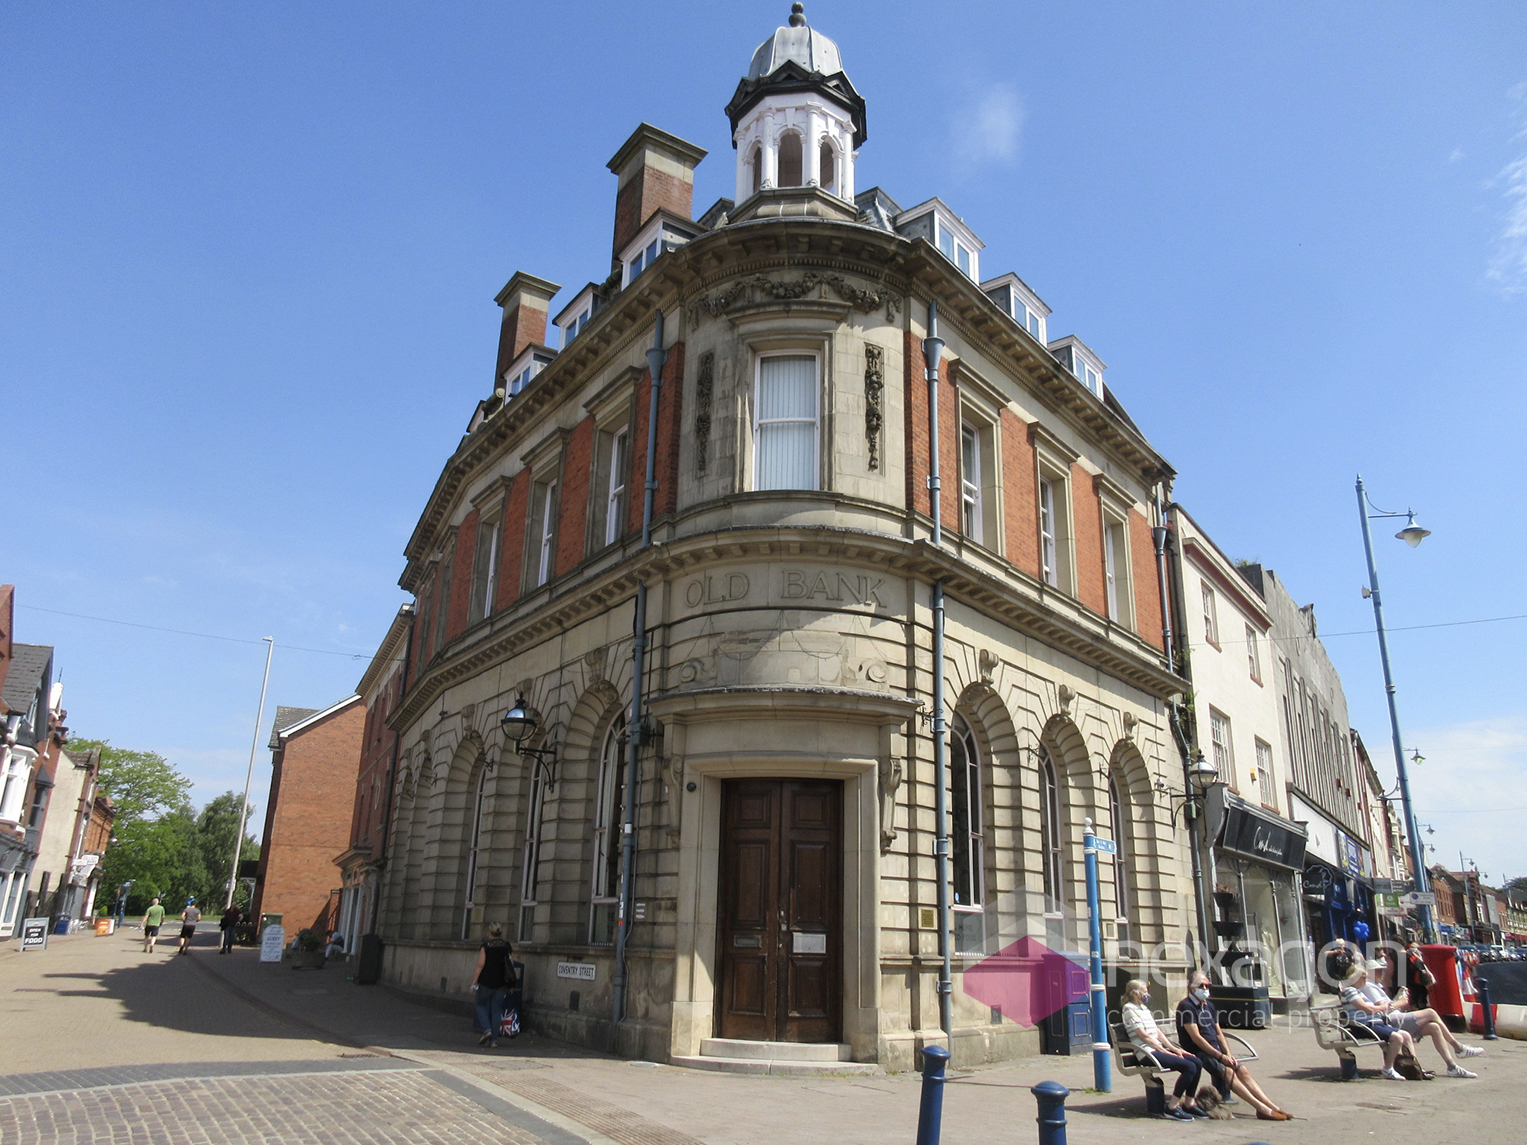 The Old Bank Stourbridge - Click for more details